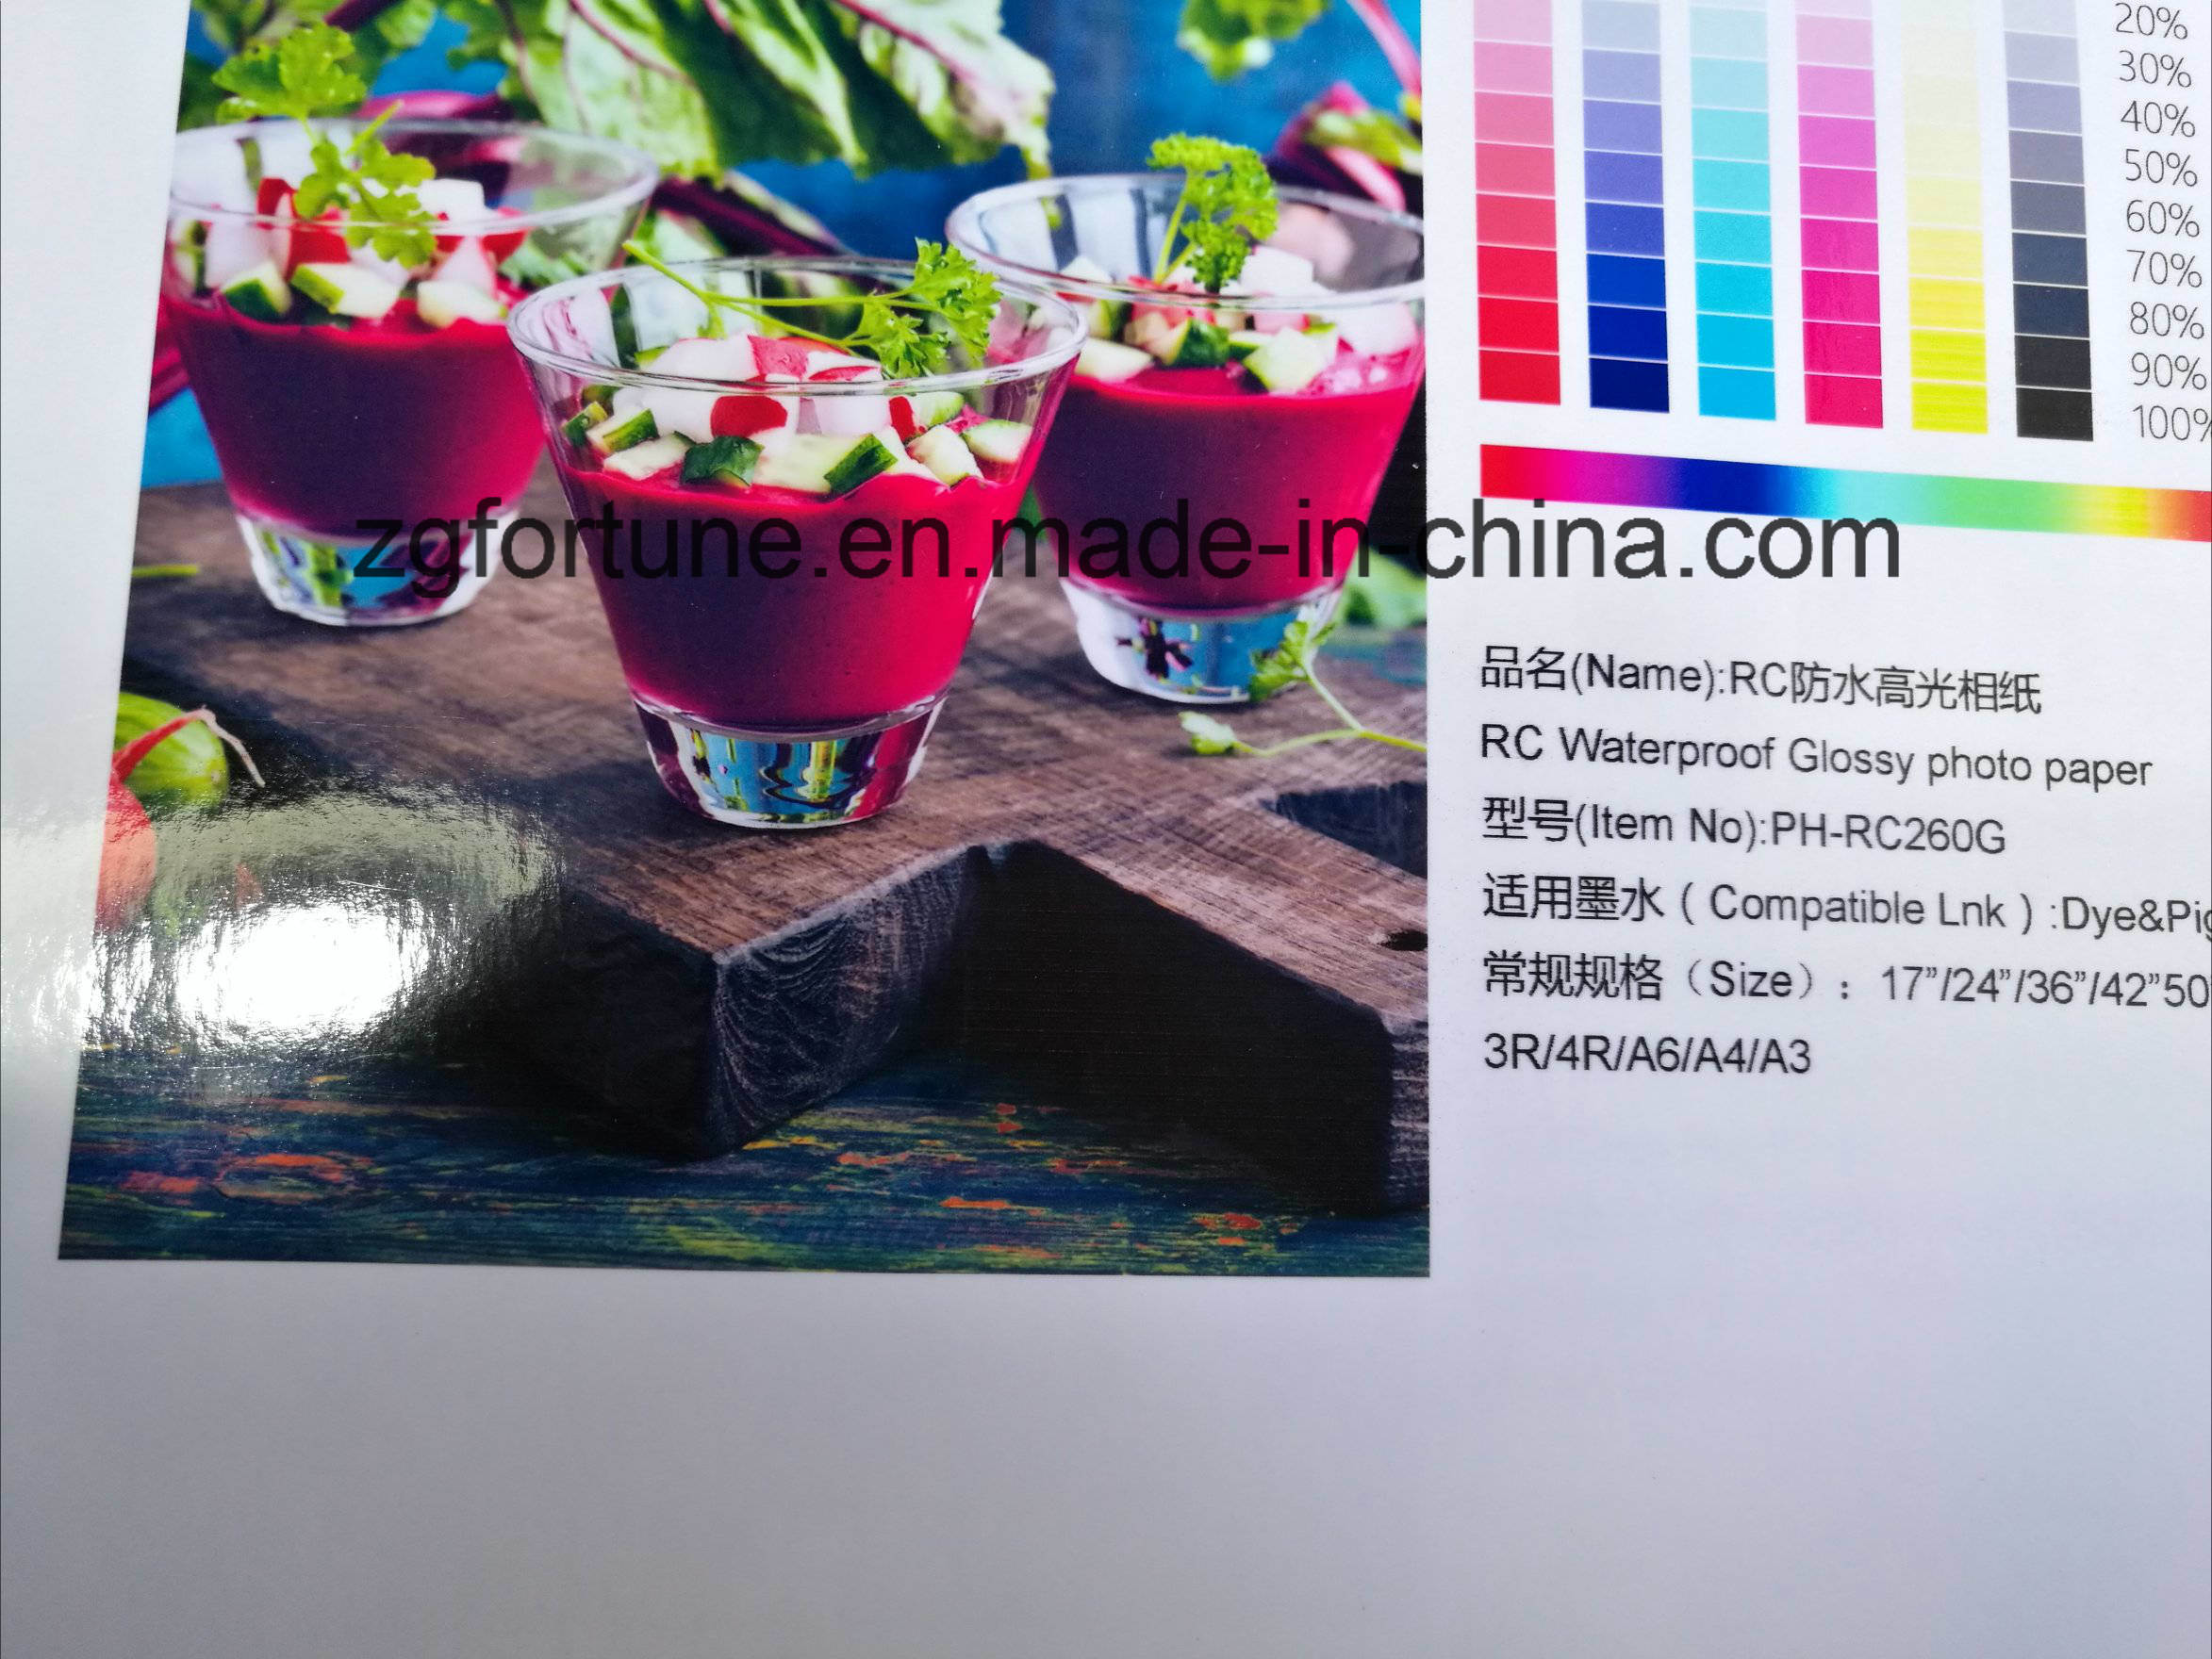 Wholesale 260gms Waterproof High Glossy RC Photo Paper for Dye&Pigment Ink